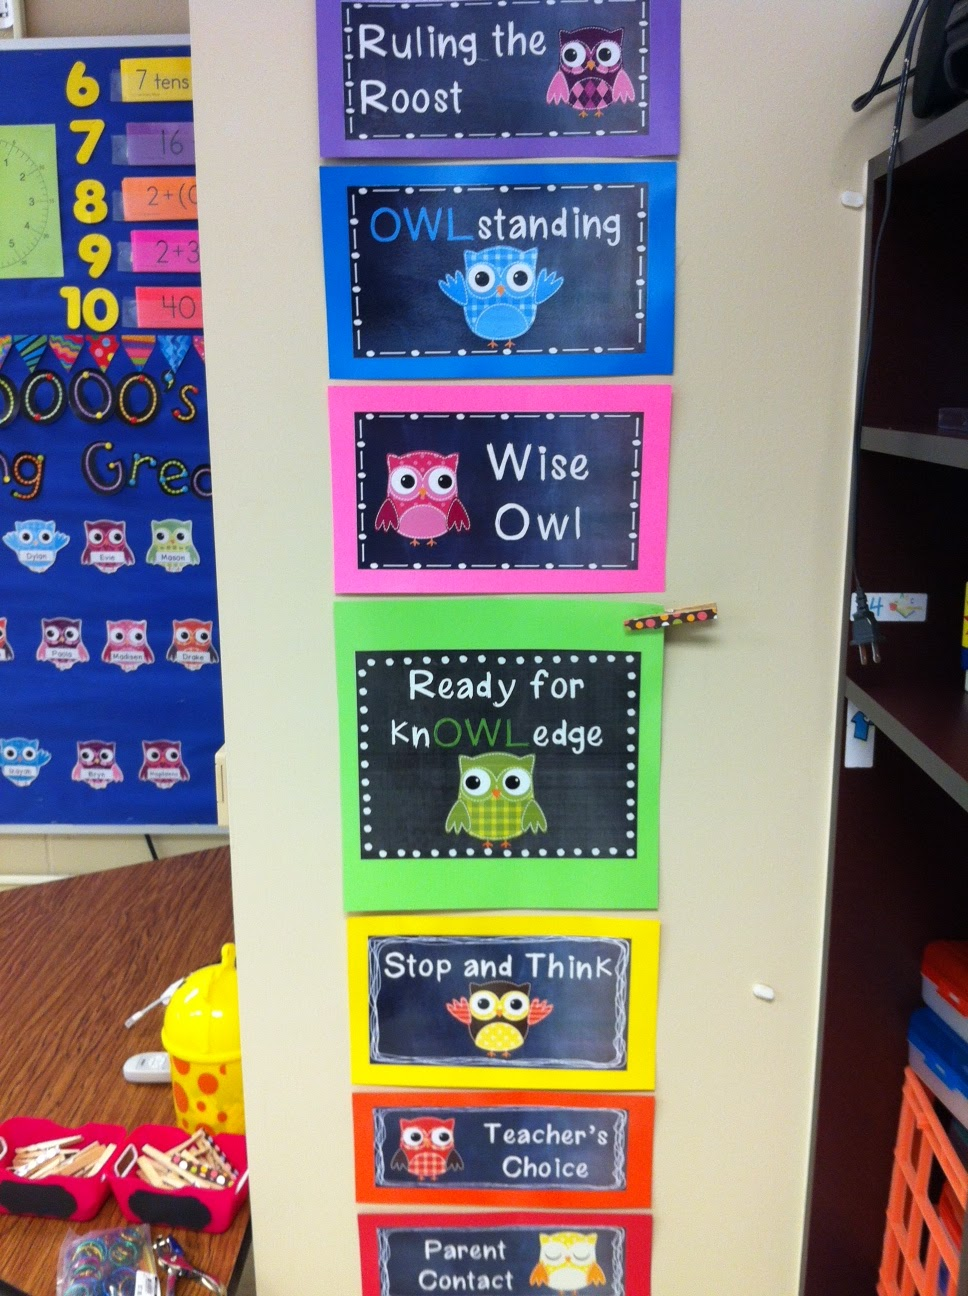 Classroom Decoration With Charts ~ Rulin the roost progress